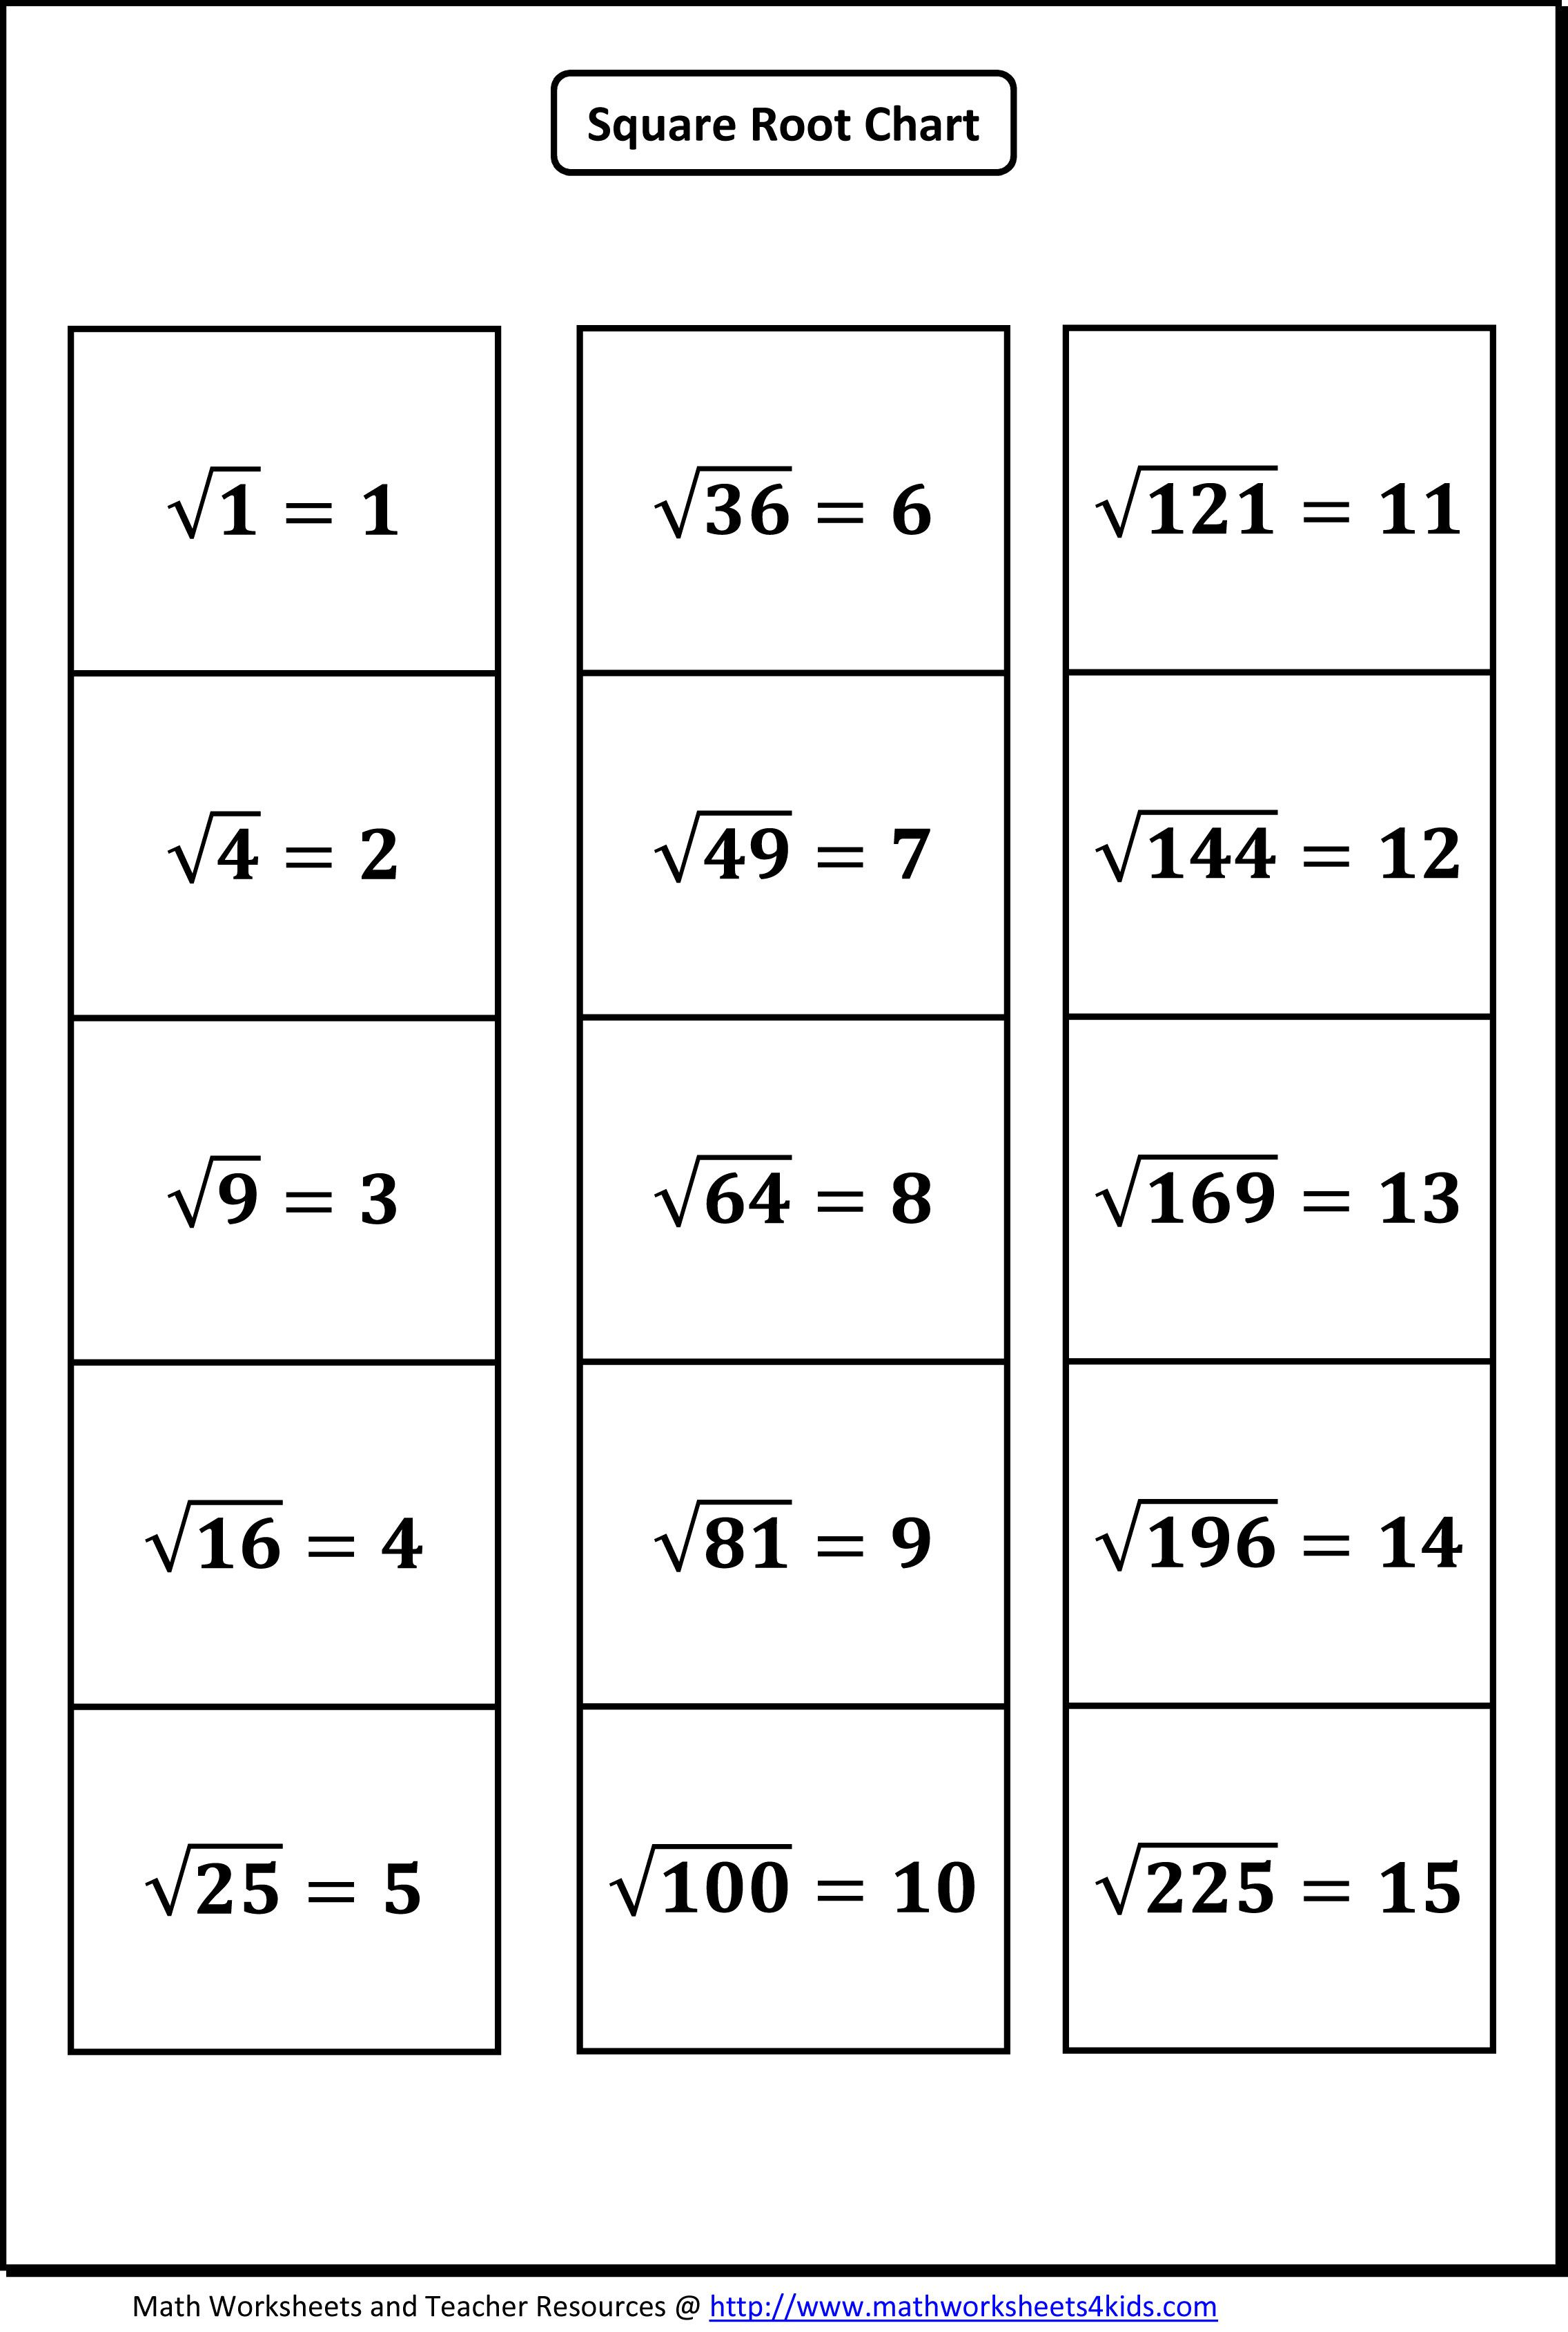 Square Root Worksheets Math Worksheets Square Roots Math